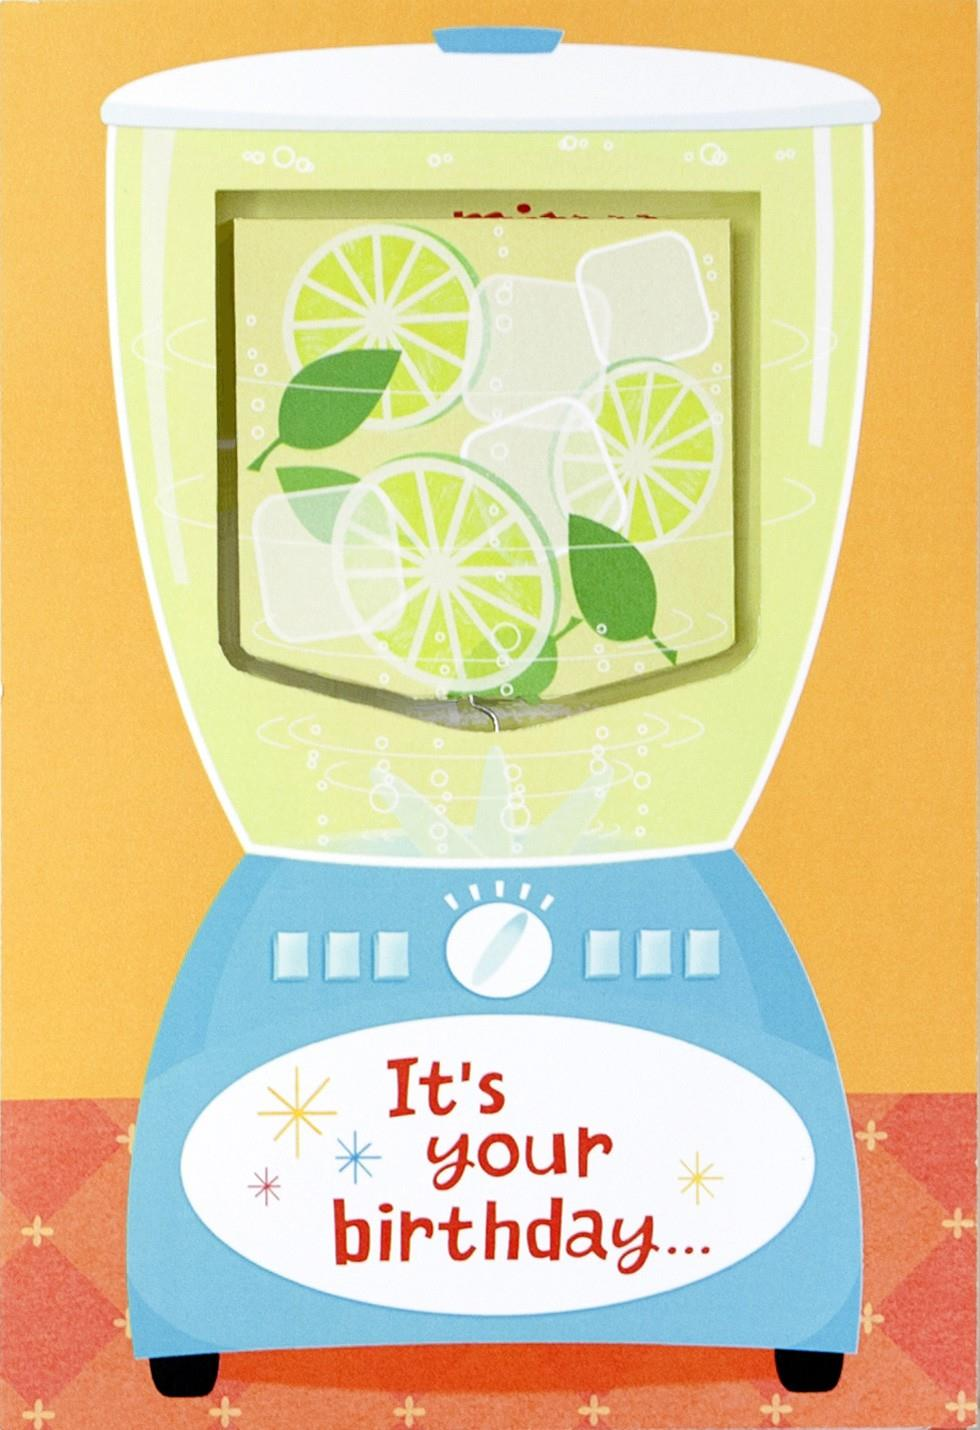 Blender and Mixed Drinks Musical Birthday Card With Motion – Musical Birthday Card